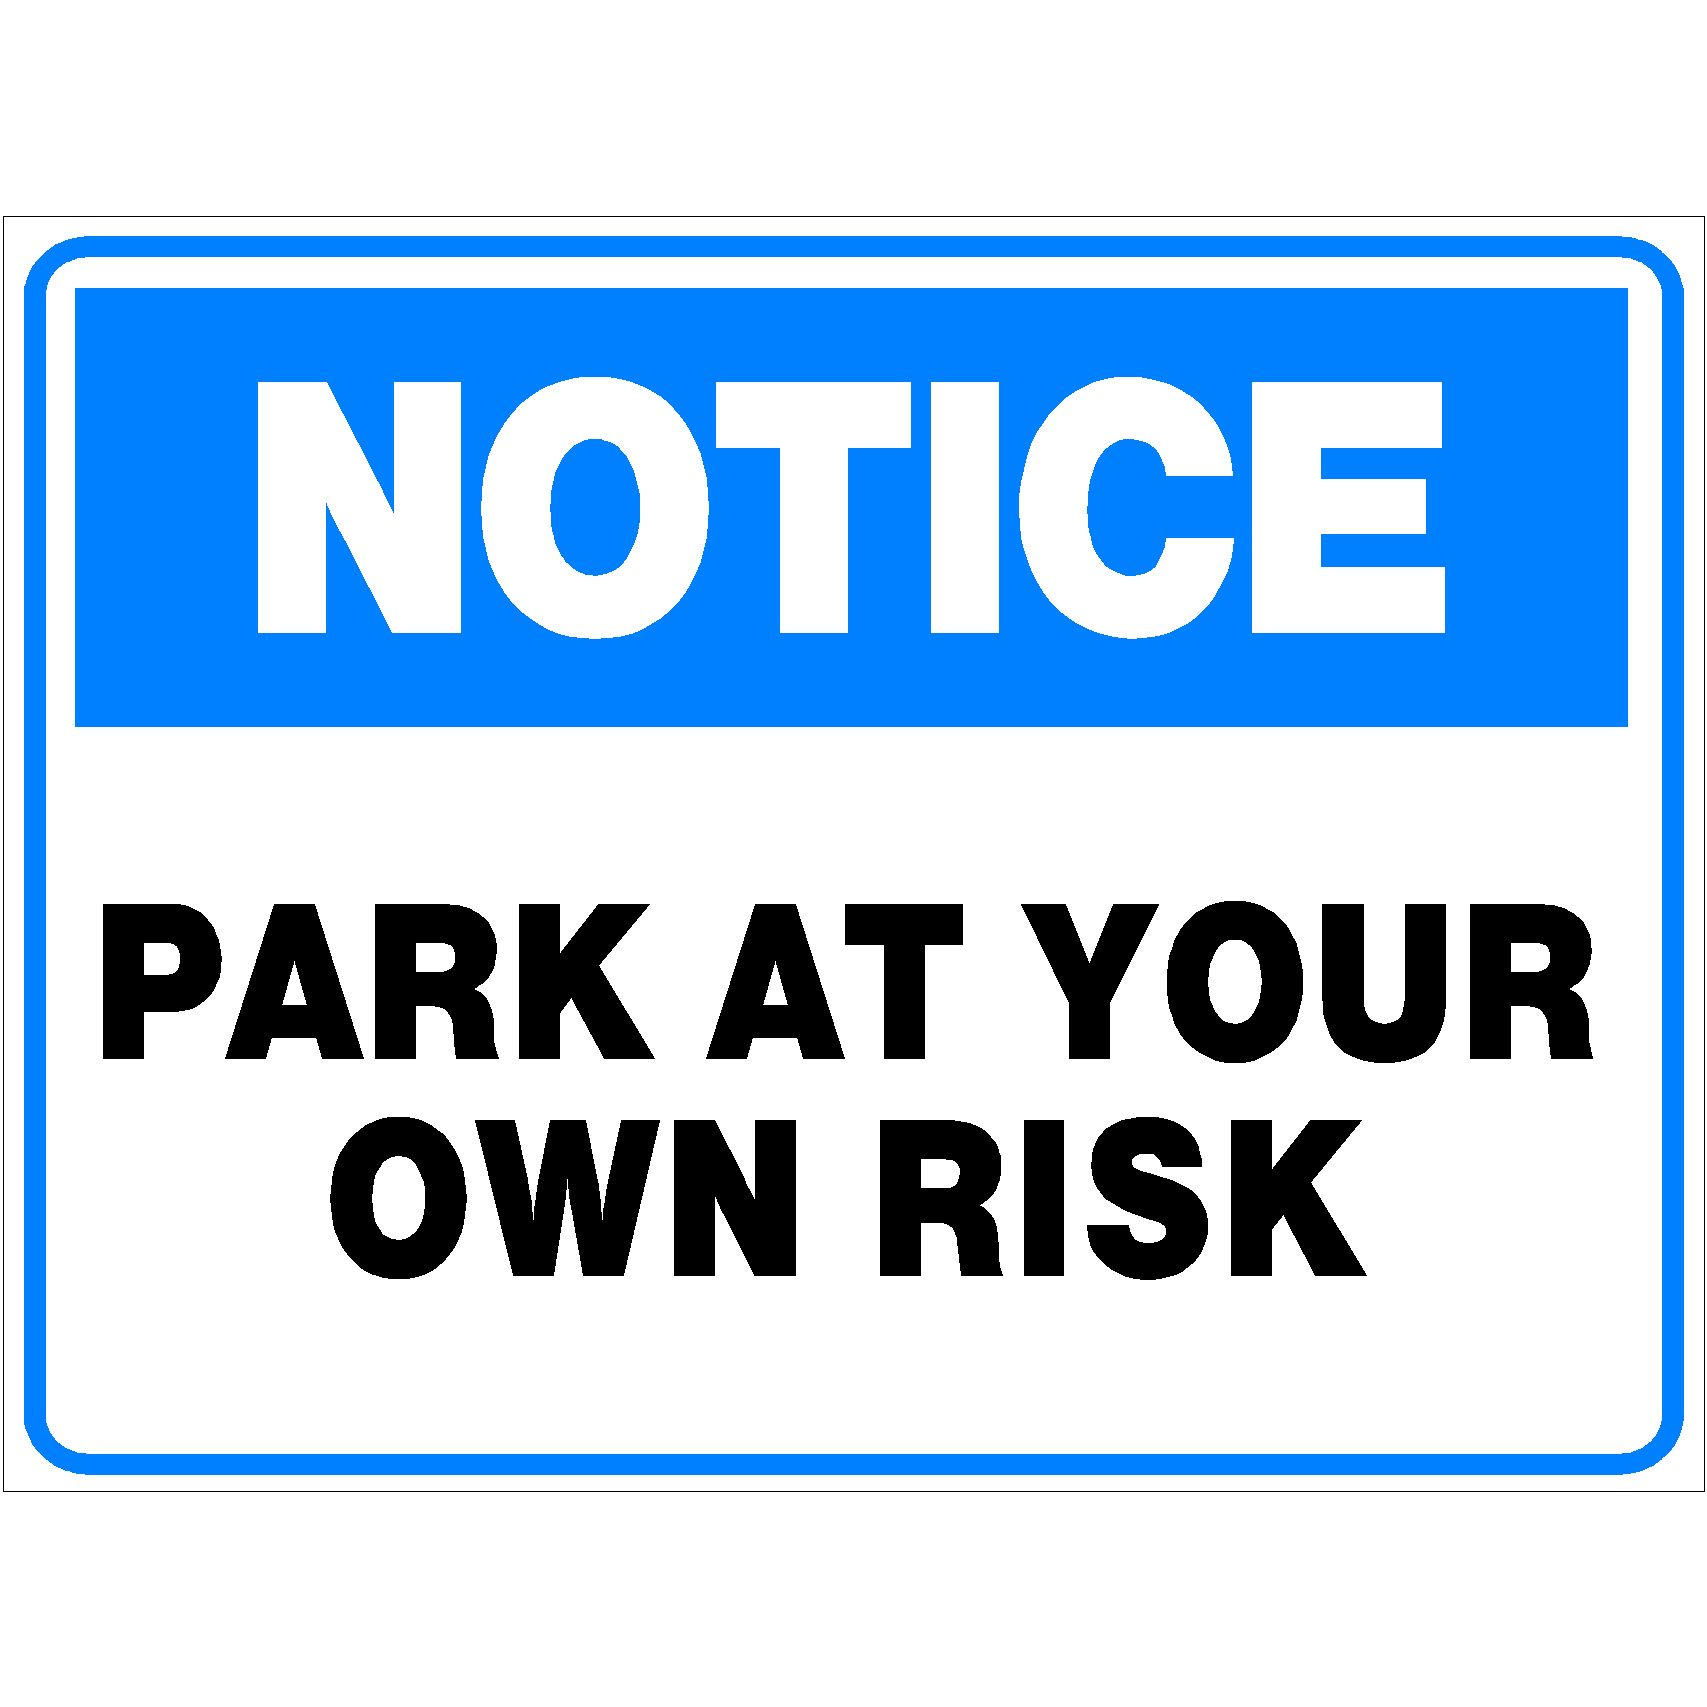 Notice Park At Your Own Risk